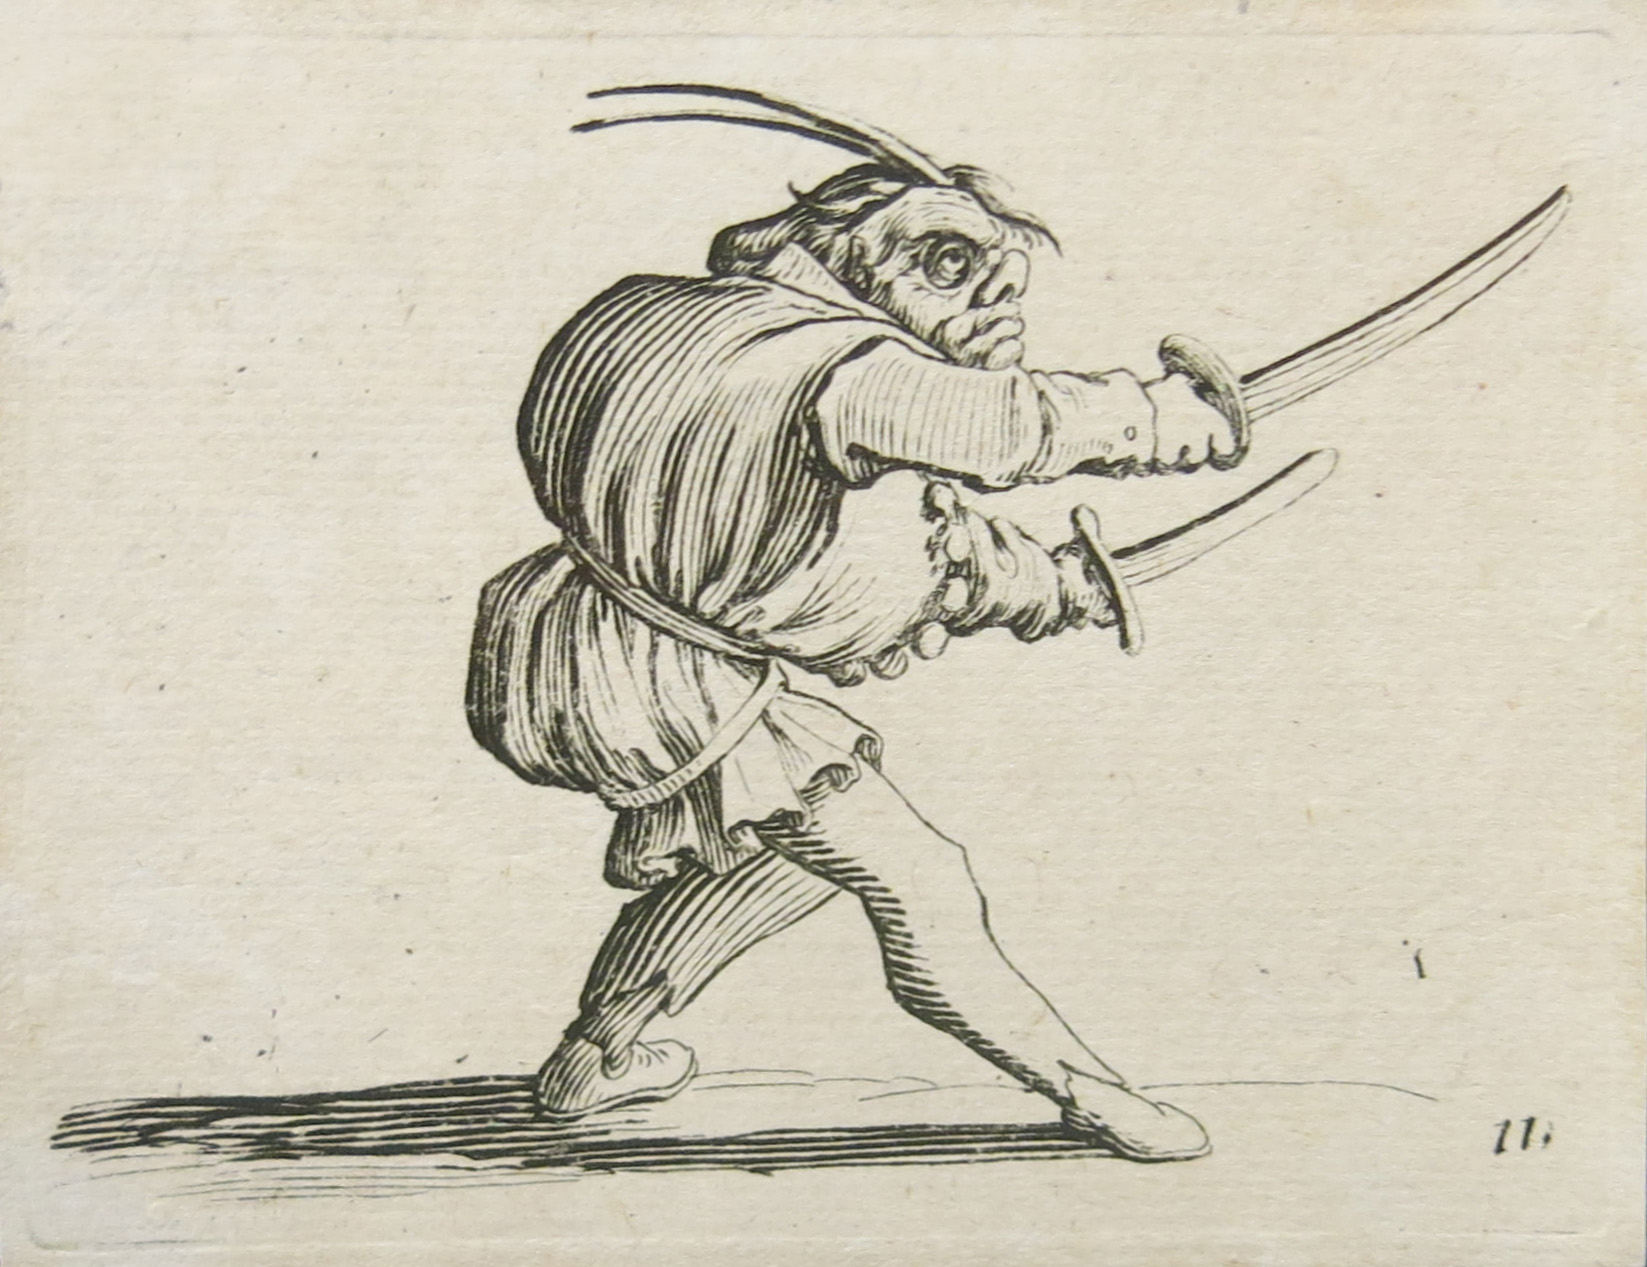 Jacques Callot, Les Gobbis, 1616, Etching (set of 20), 2 1/2h x 3 1/2w in